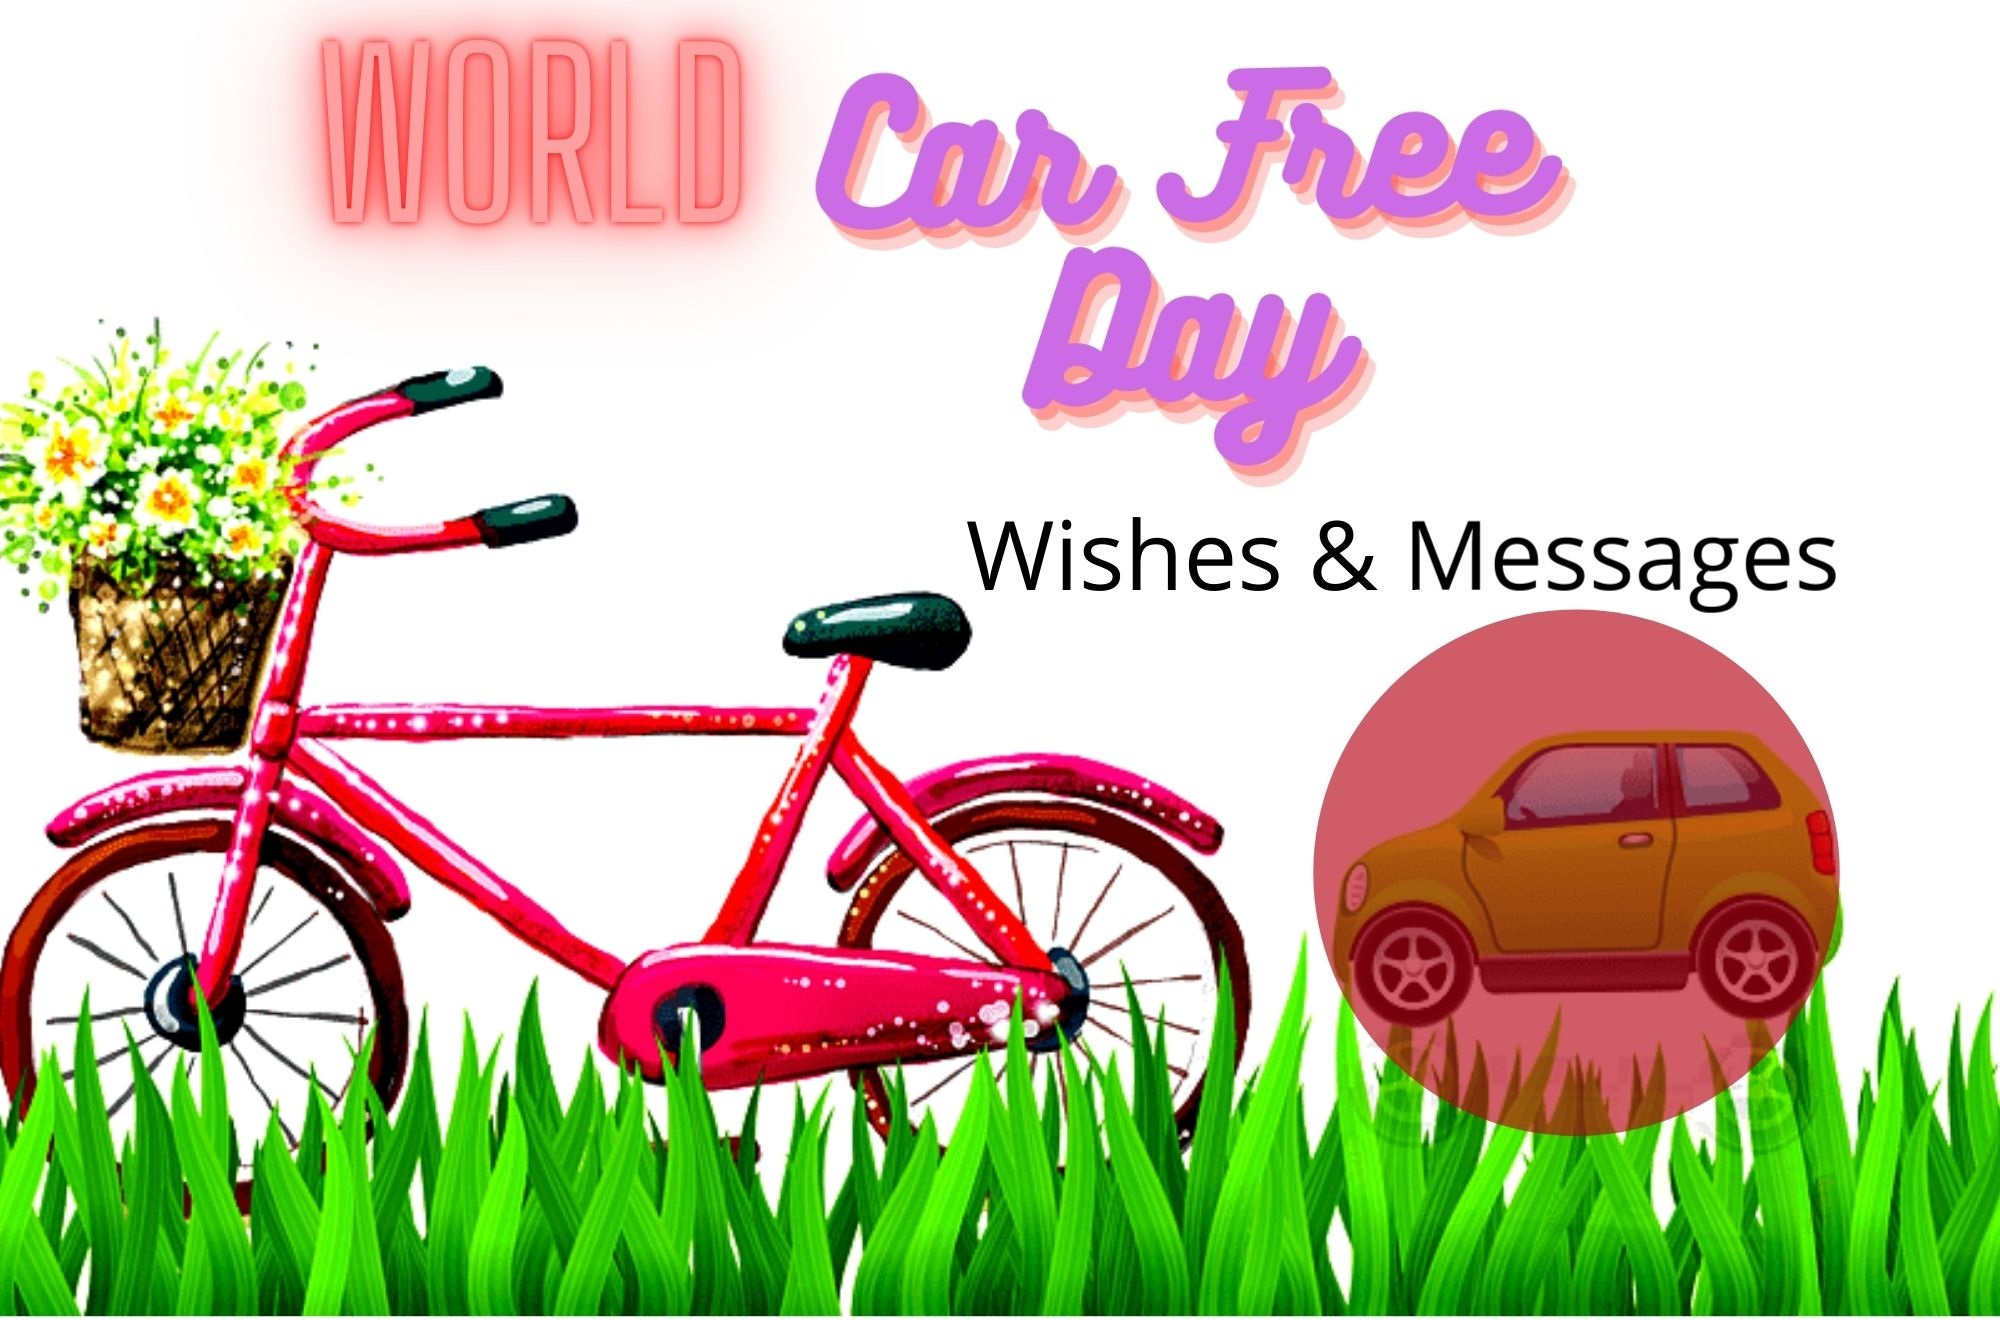 World Car Free Day Wishes & Messages